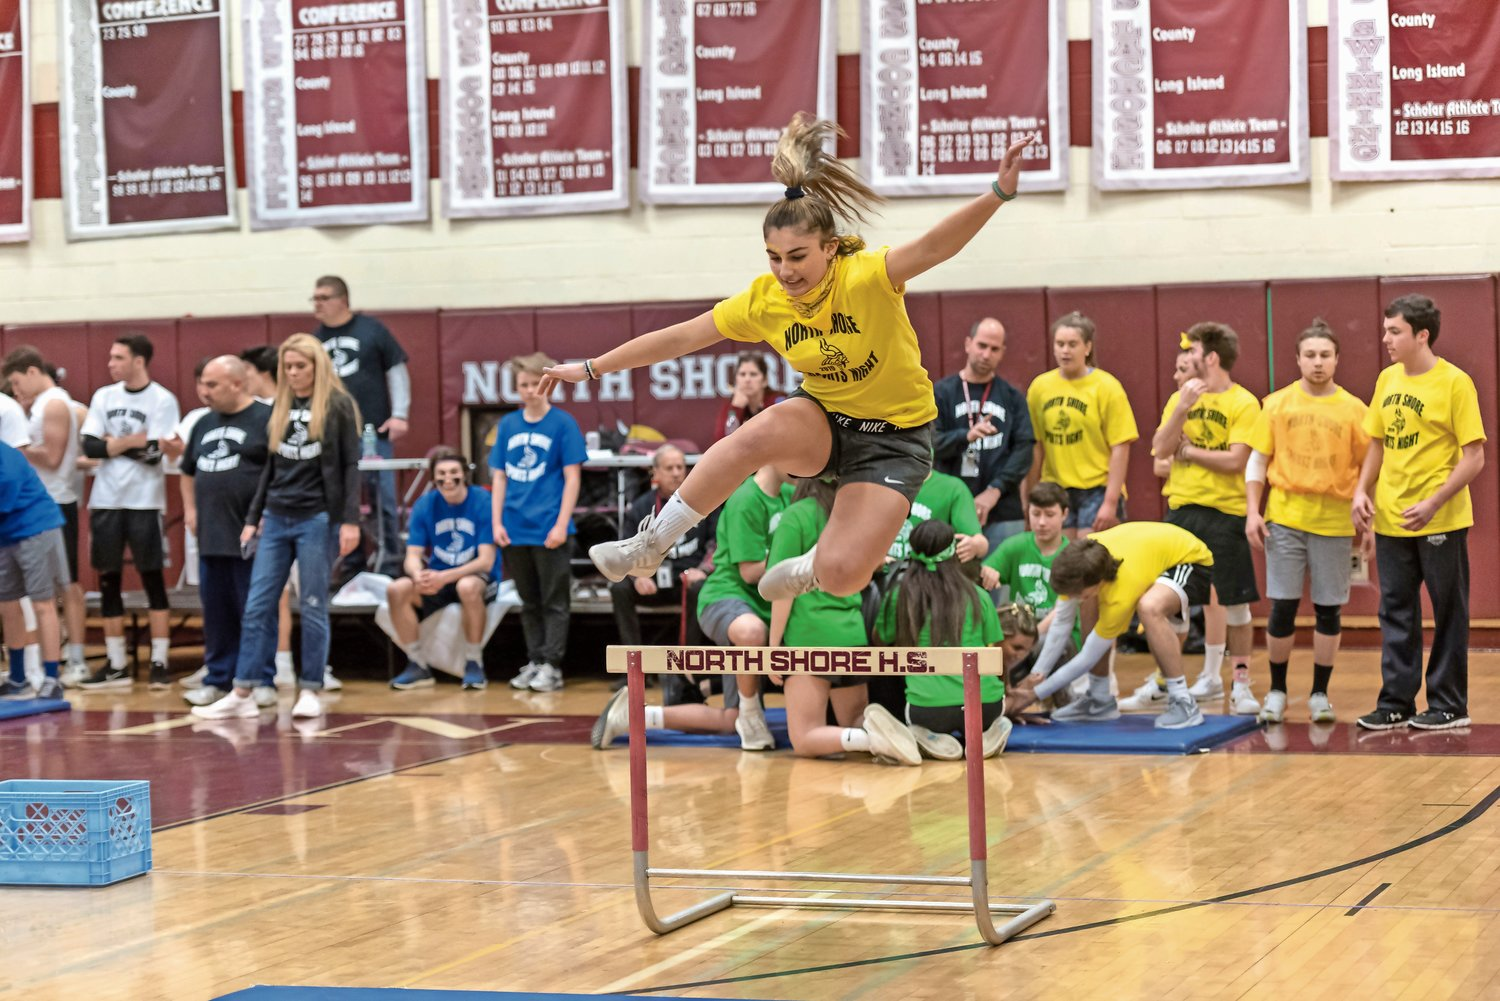 Junior Gabby Scott leaped over a hurdle in the obstacle course.